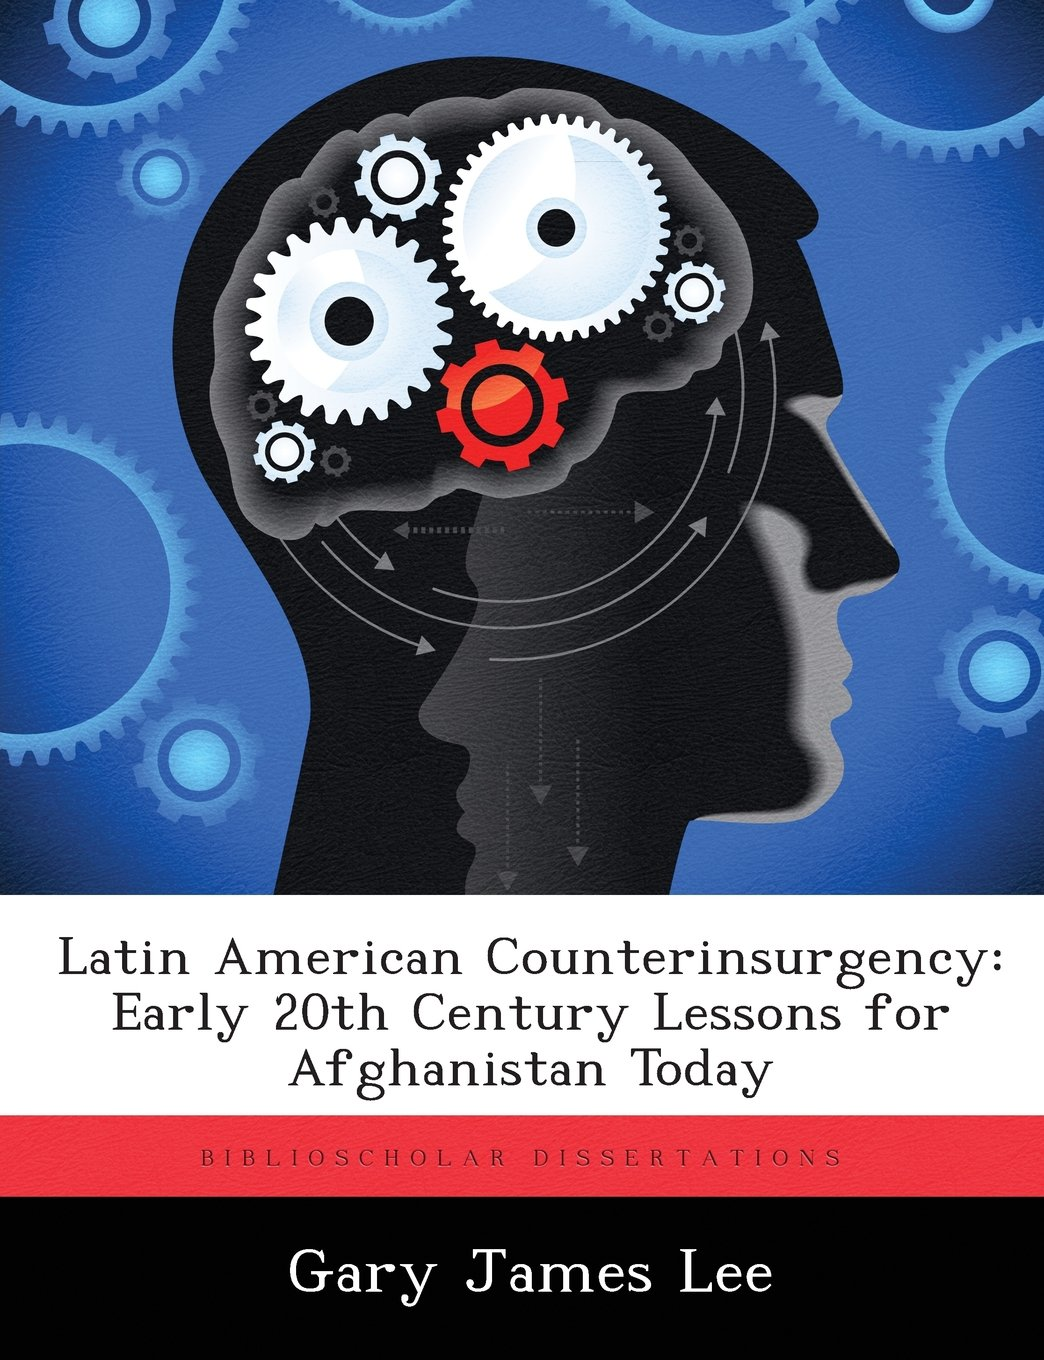 Read Online Latin American Counterinsurgency: Early 20th Century Lessons for Afghanistan Today PDF